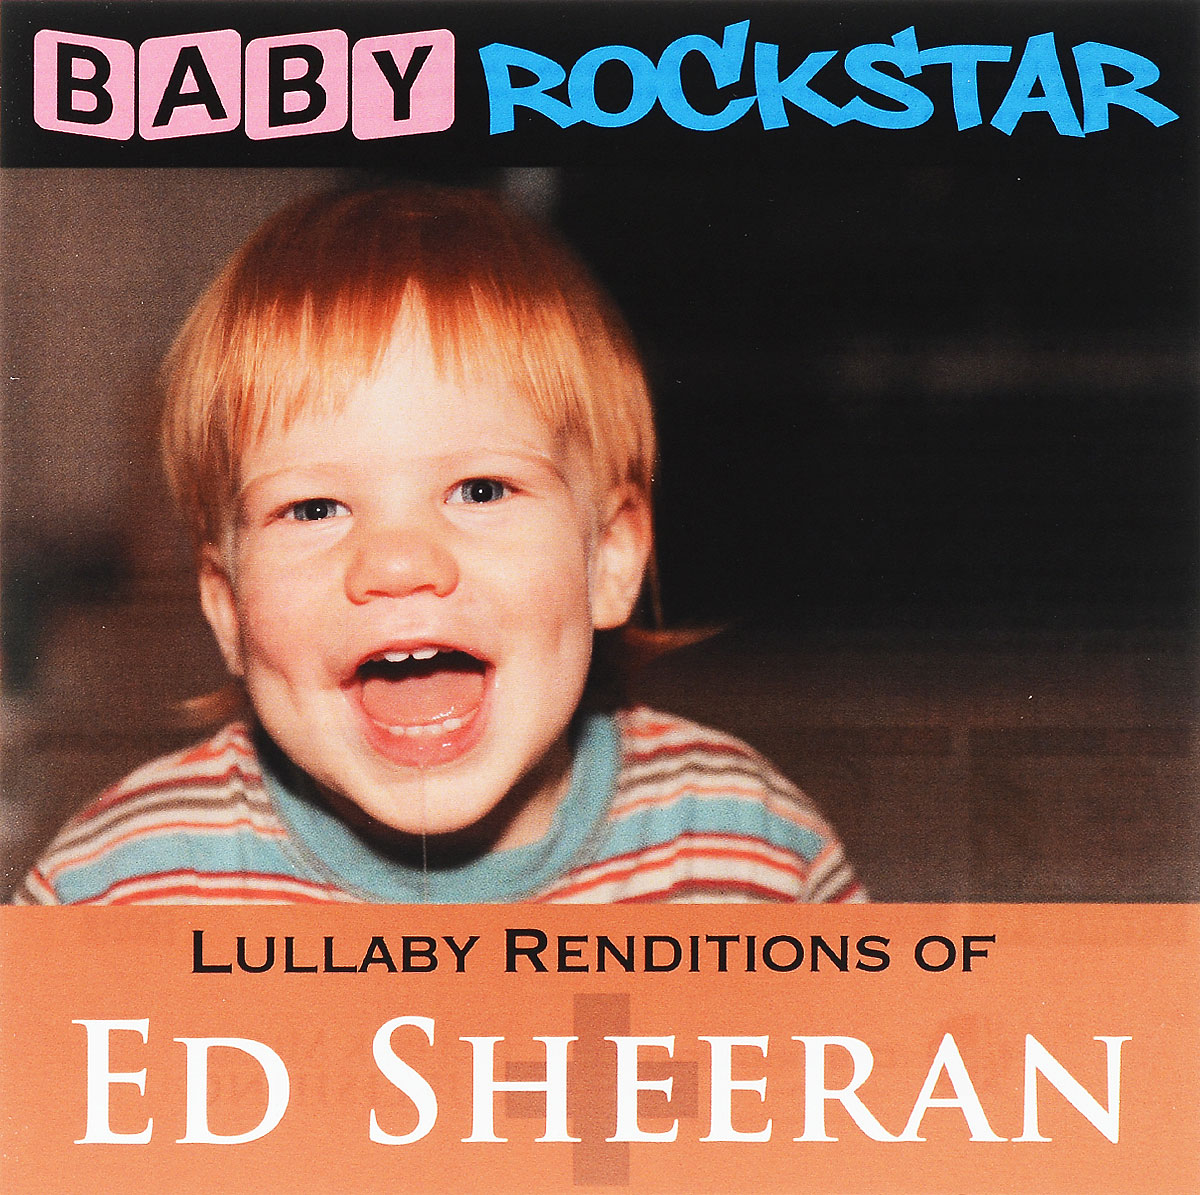 Baby Rockstar Baby Rockstar. Lullaby Renditions Of Ed Sheeran